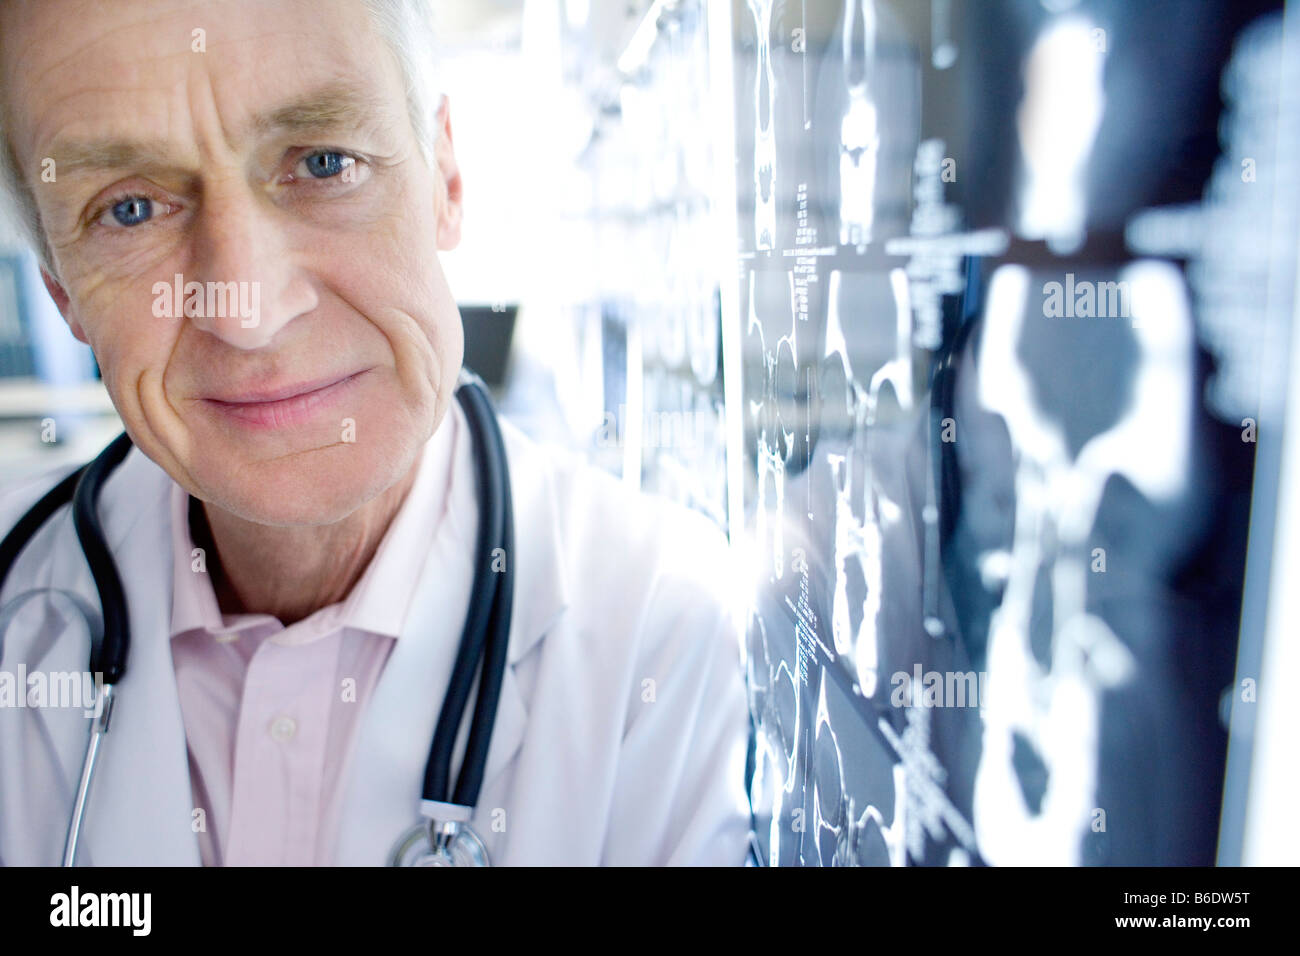 Radiologist beside CT scans. CT scanning is a diagnostic technique that uses X-rays to produce cross images. - Stock Image